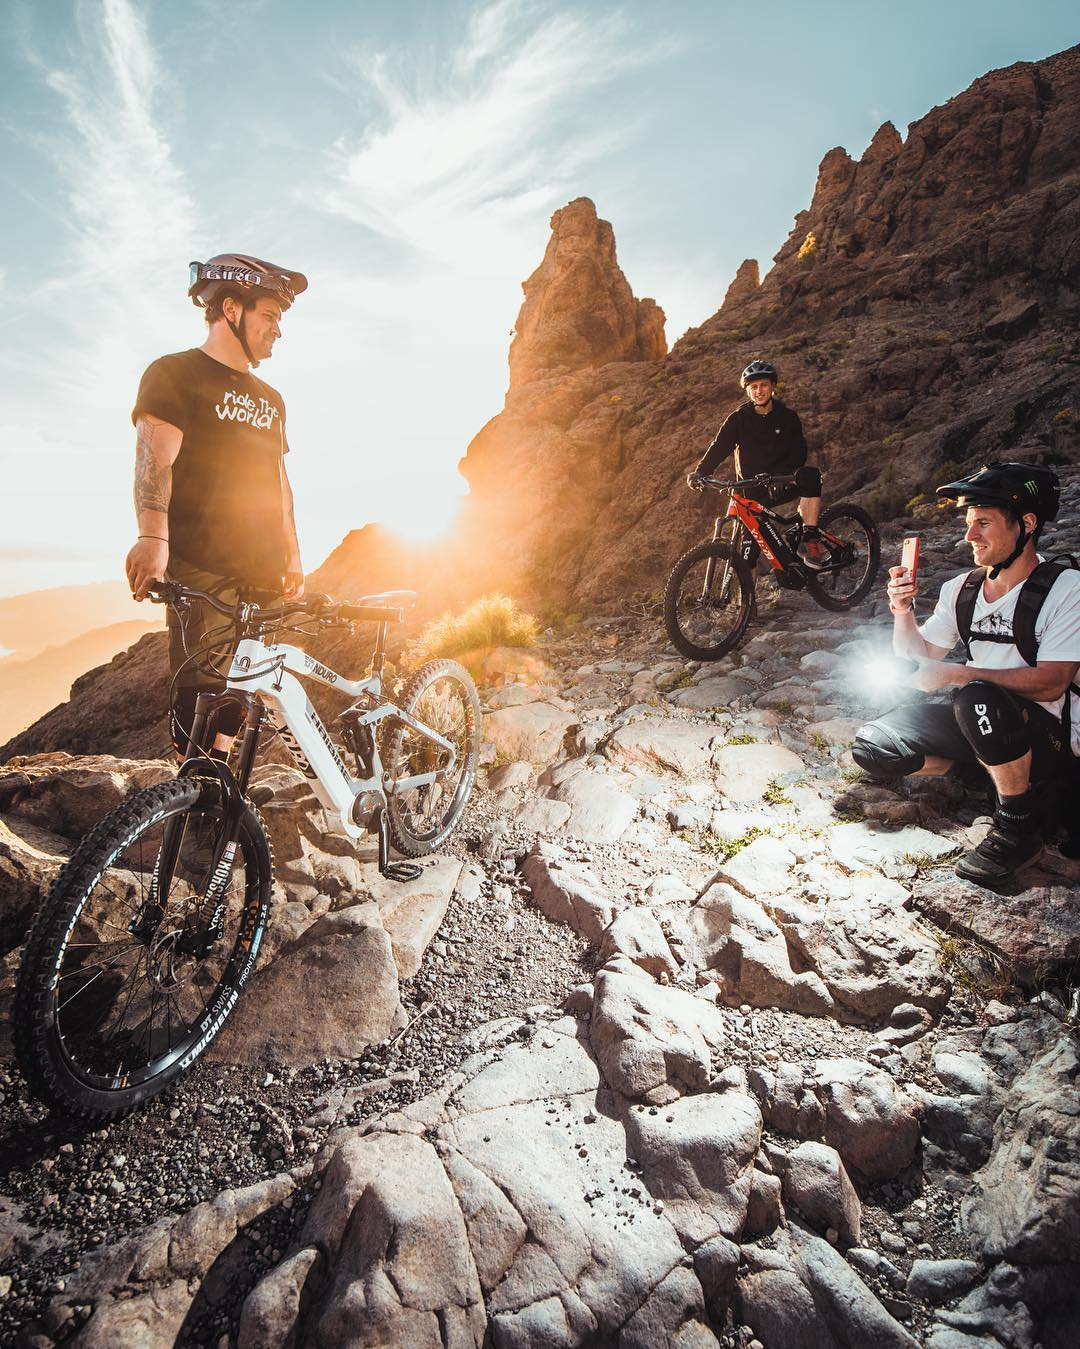 Catching the last rays at the end of an amazing day taking photos with @yannickgranieri / @tomcardymtb (heal up soon dude!) and bossman @sampilgrim helping us with a fill in flash. The more than 50,000 photos we have shot during the past 3.5 years have been one of the key forces to shape what Haibike is all about and to give it some real soul and character along the way.  #haibike #photoshoot #emtb #agencylife #mtb